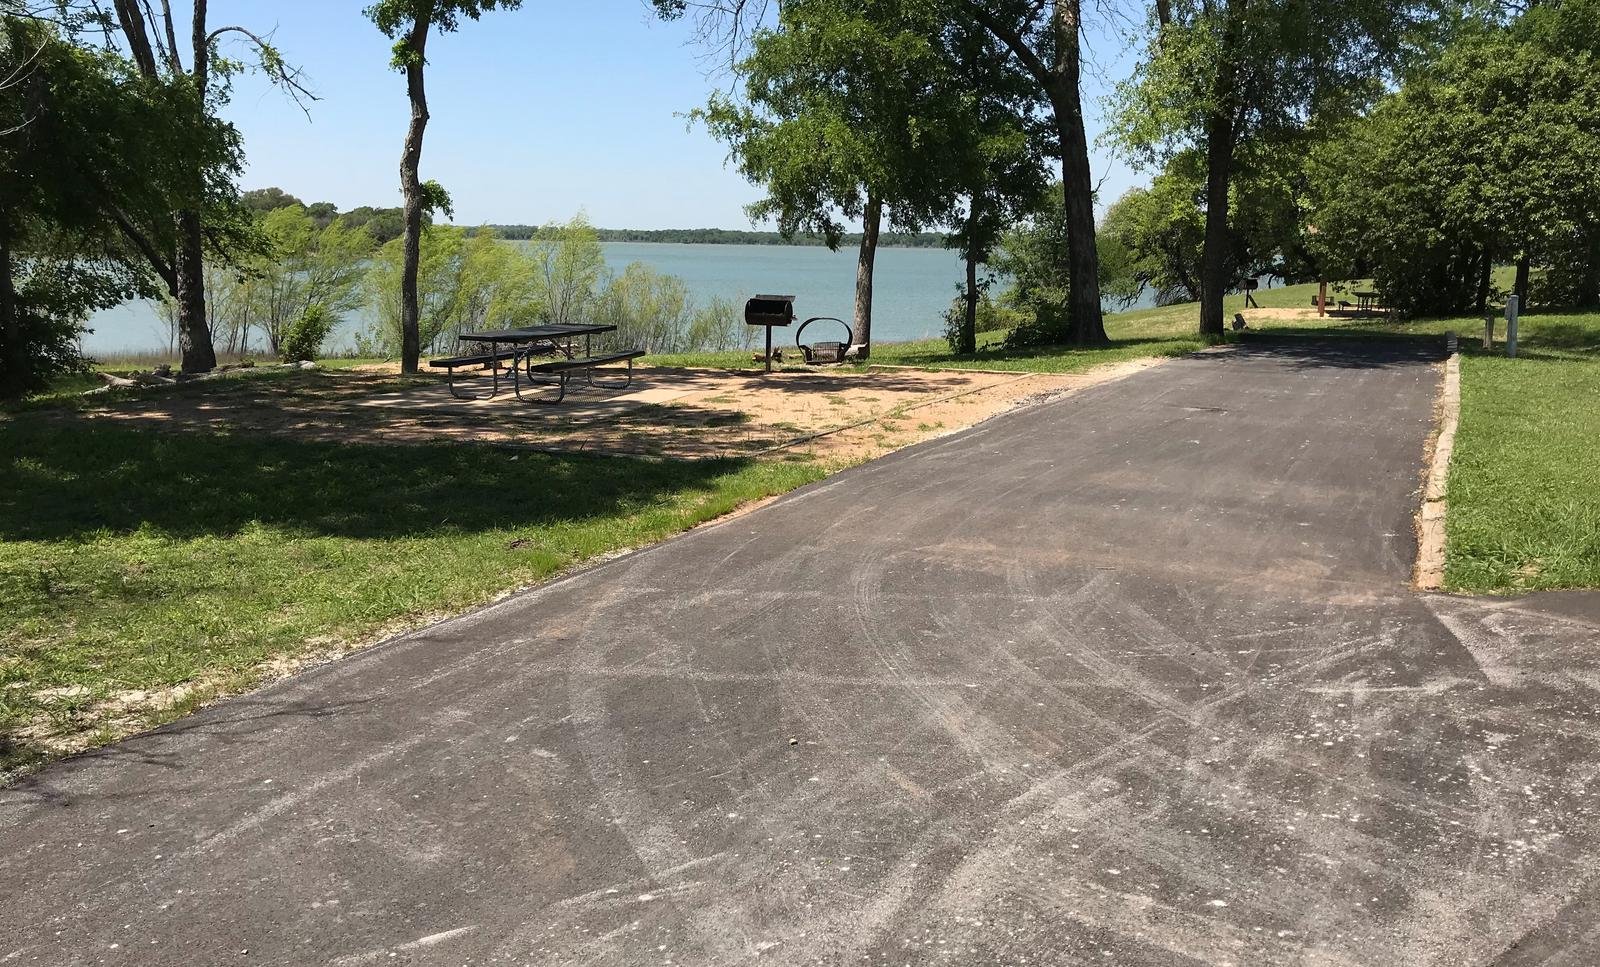 RV site with picnic table, grill, fire ring, and Waco Lake in the background Ca